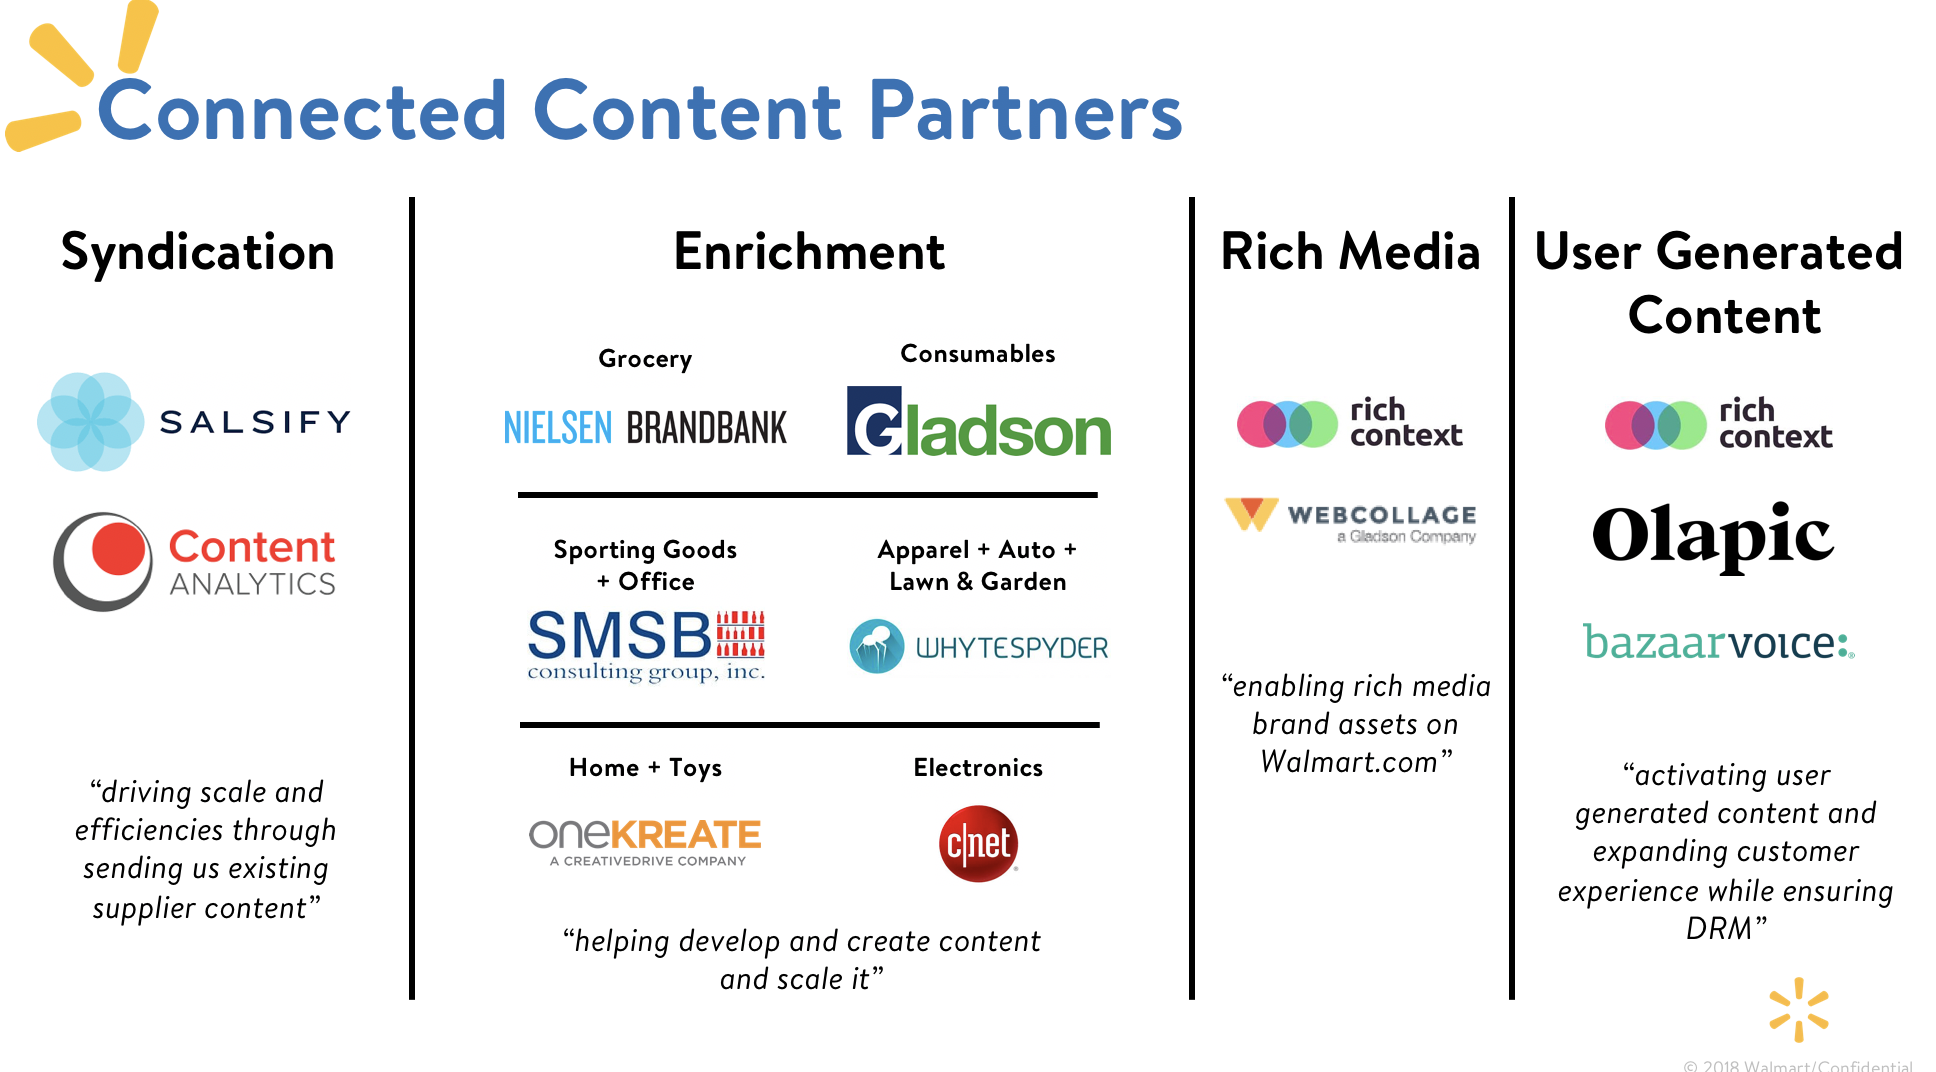 Walmart's Connected Content Partners